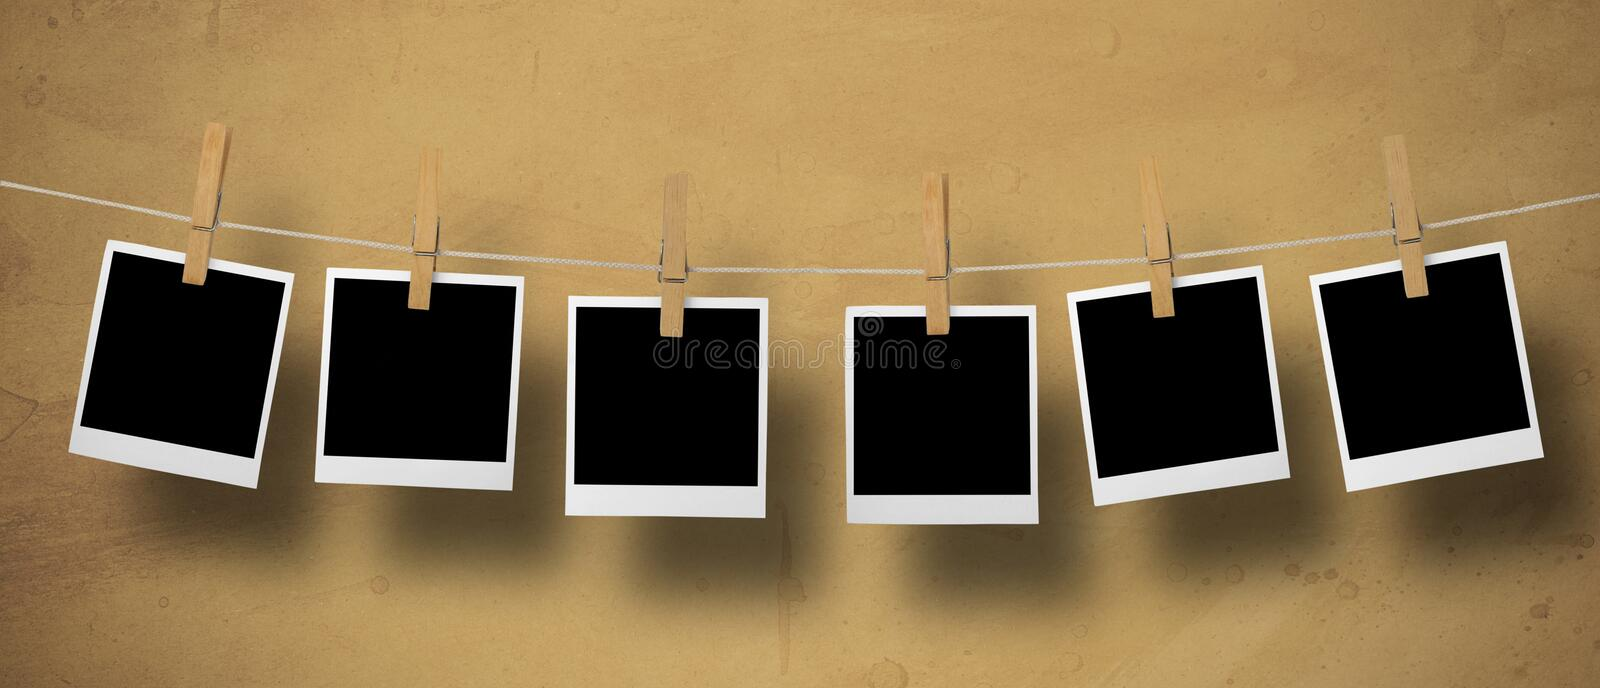 Download Instant Camera Frames stock image. Image of ancient, polaroid - 4213487